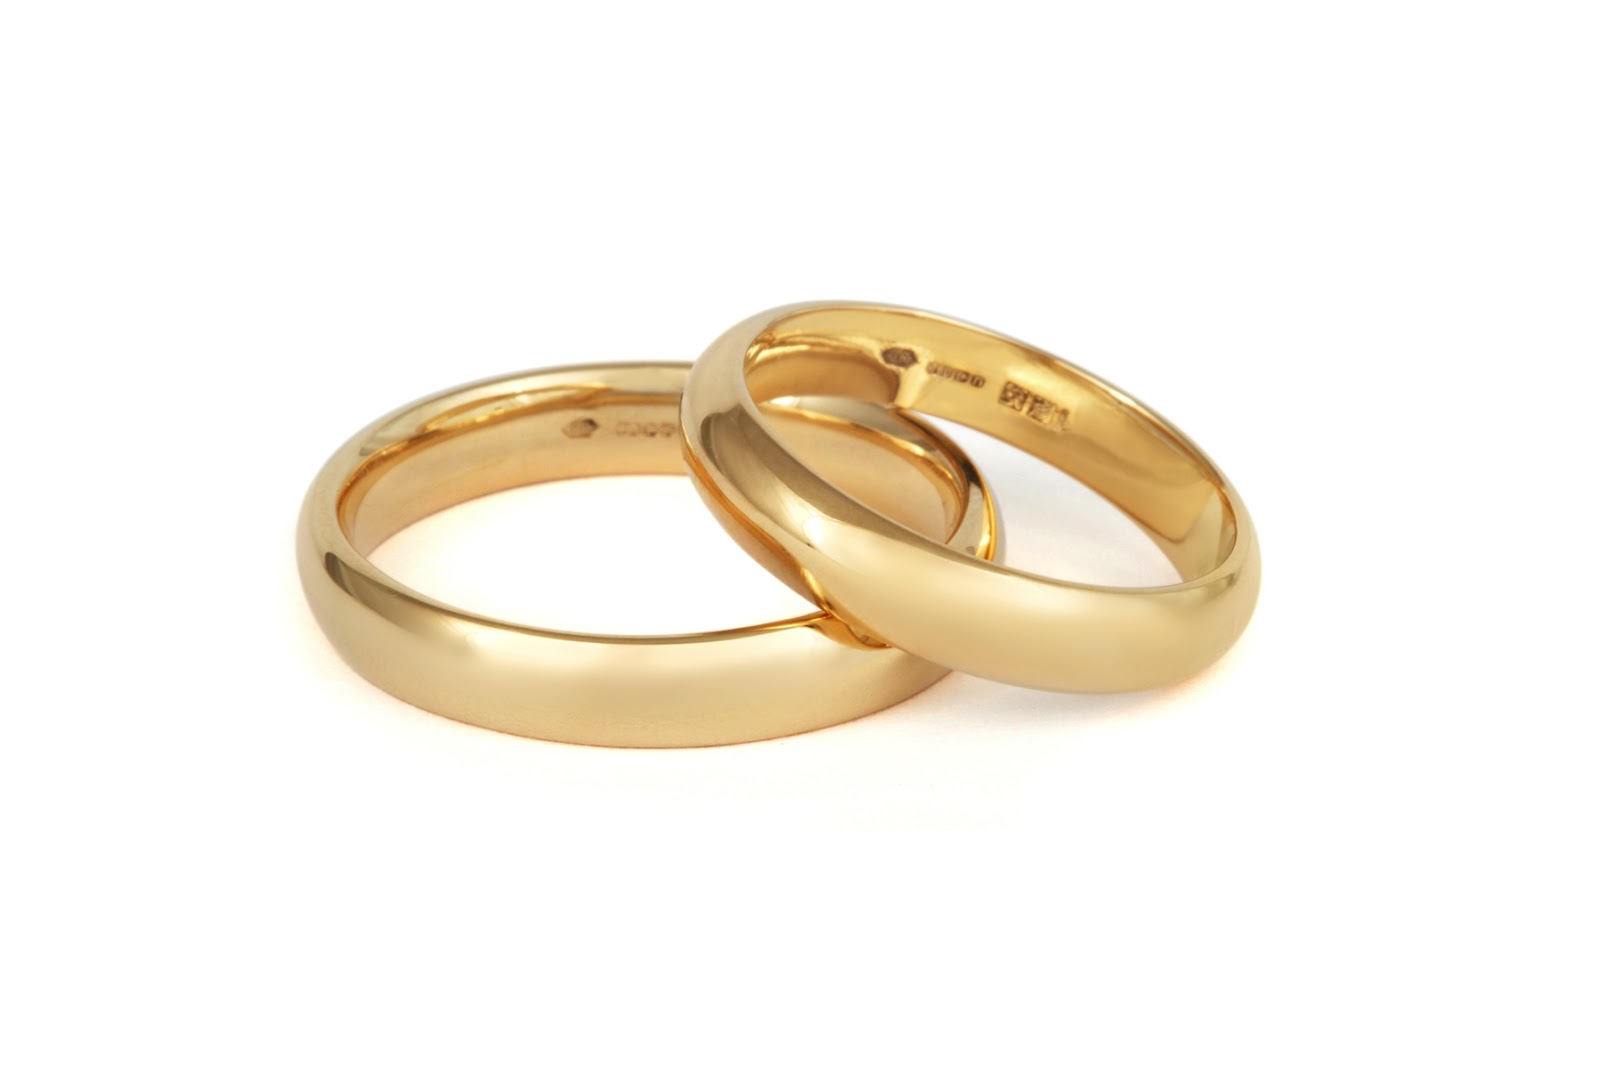 wow new wedding rings: christian engraved wedding rings